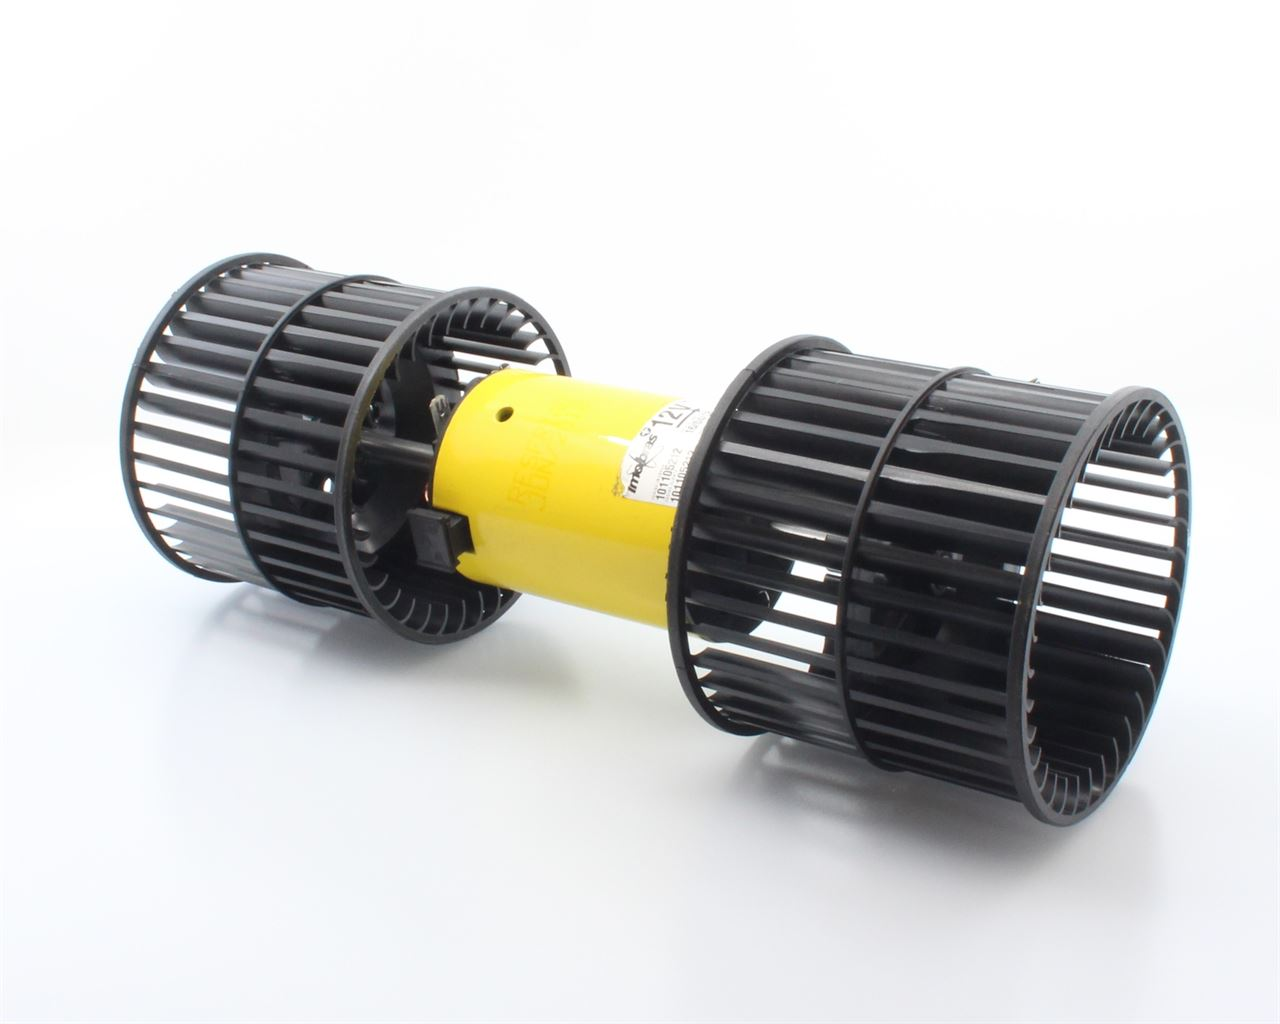 Picture of FRESAIR AIR CONDITION SYSTEM REPLACEMENT 12V MOTOR / FAN